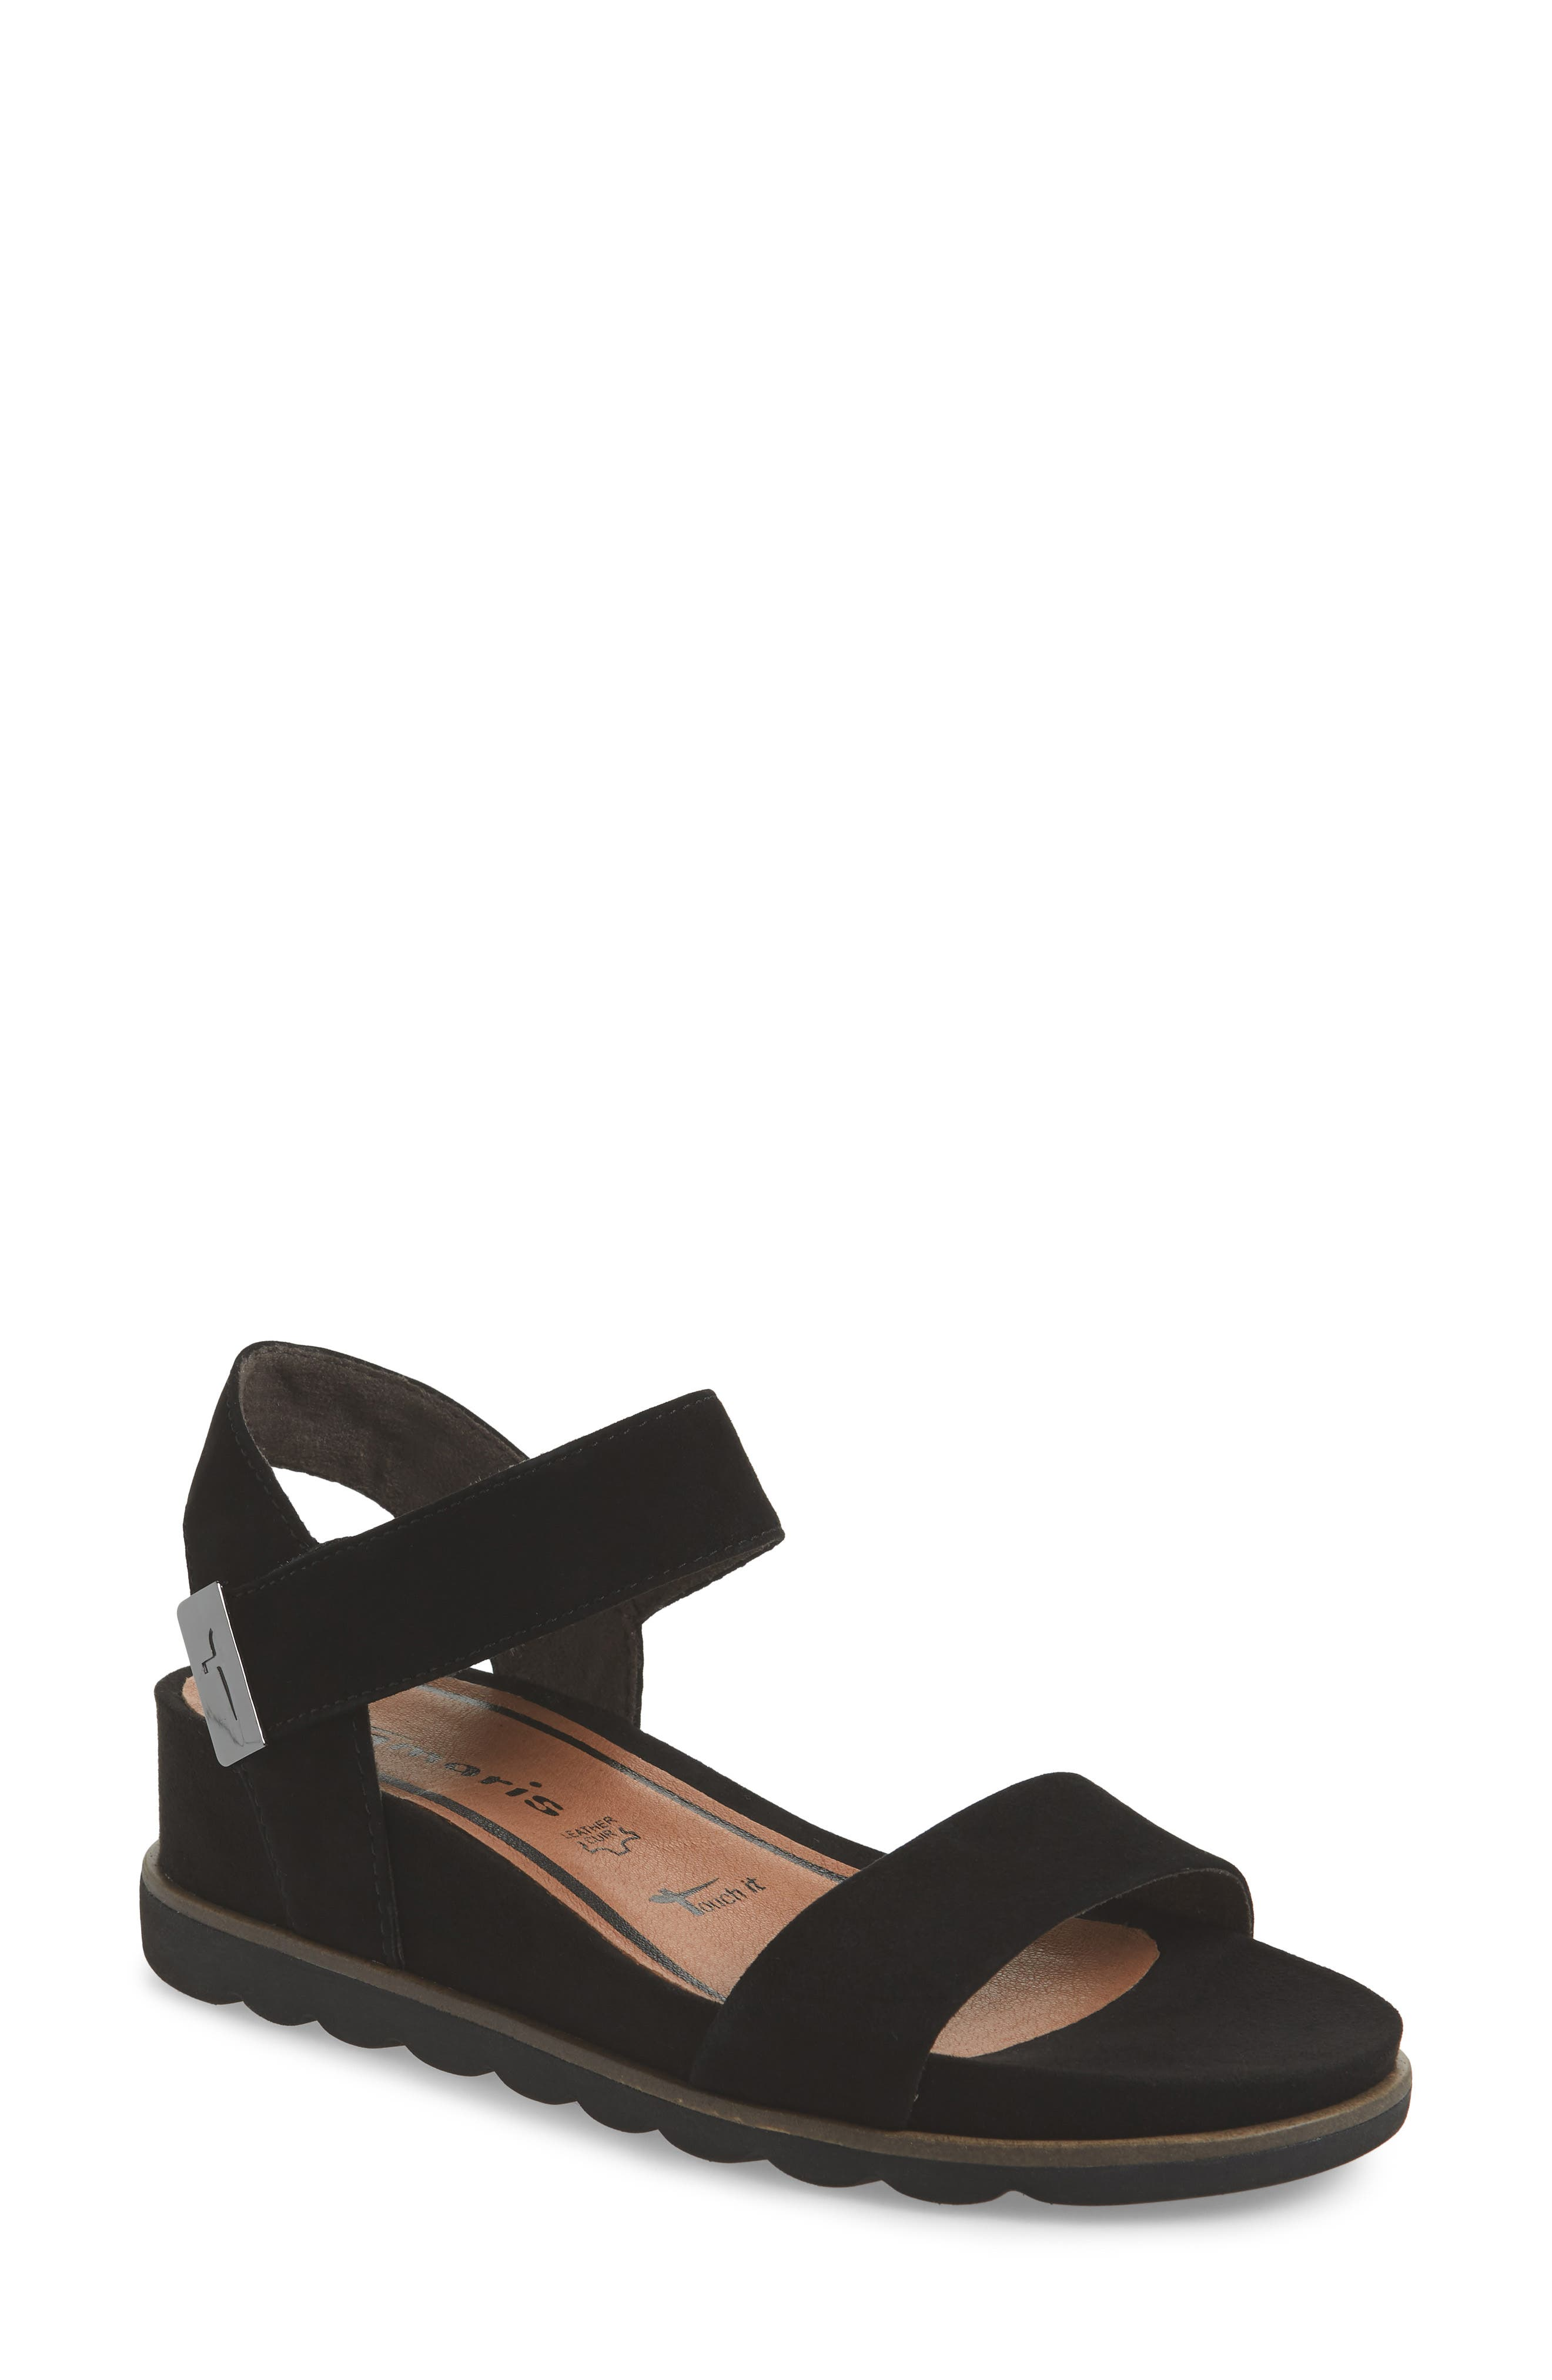 Cory Wedge Sandal,                             Main thumbnail 1, color,